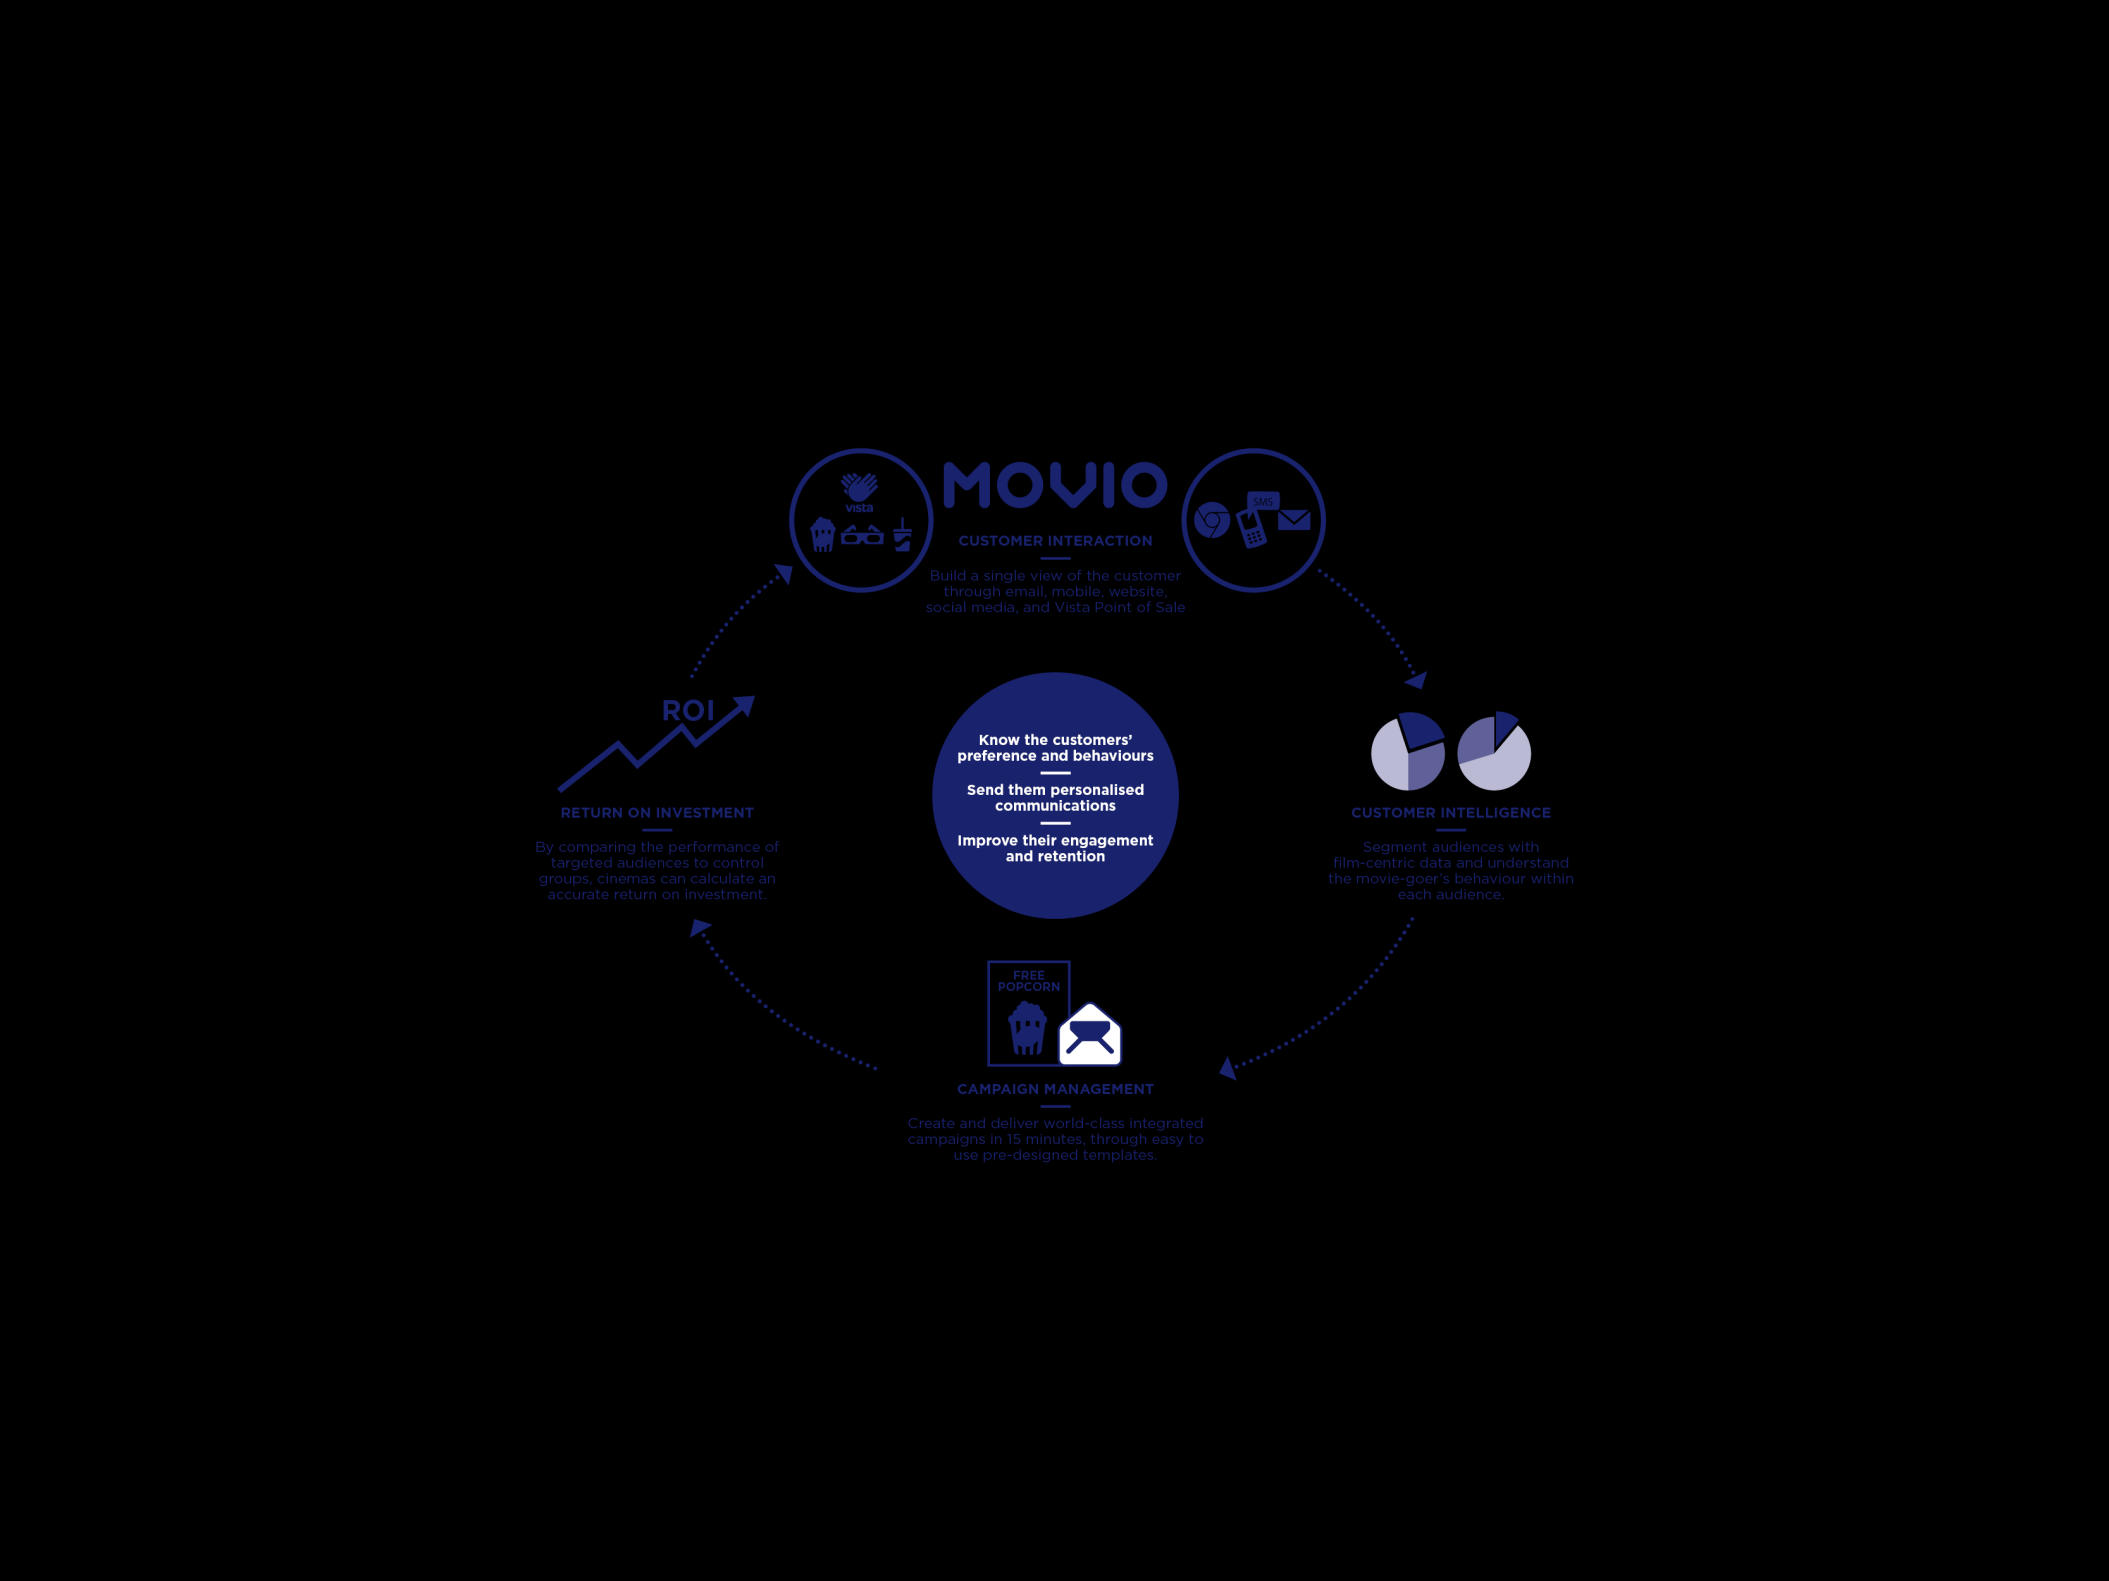 Movio > Performance since full acquisition on target > Continuing to expand Movio Cinema through the Vista cinema client base in new territories > Movio Cinema now in 14 territories > Focus on USA is